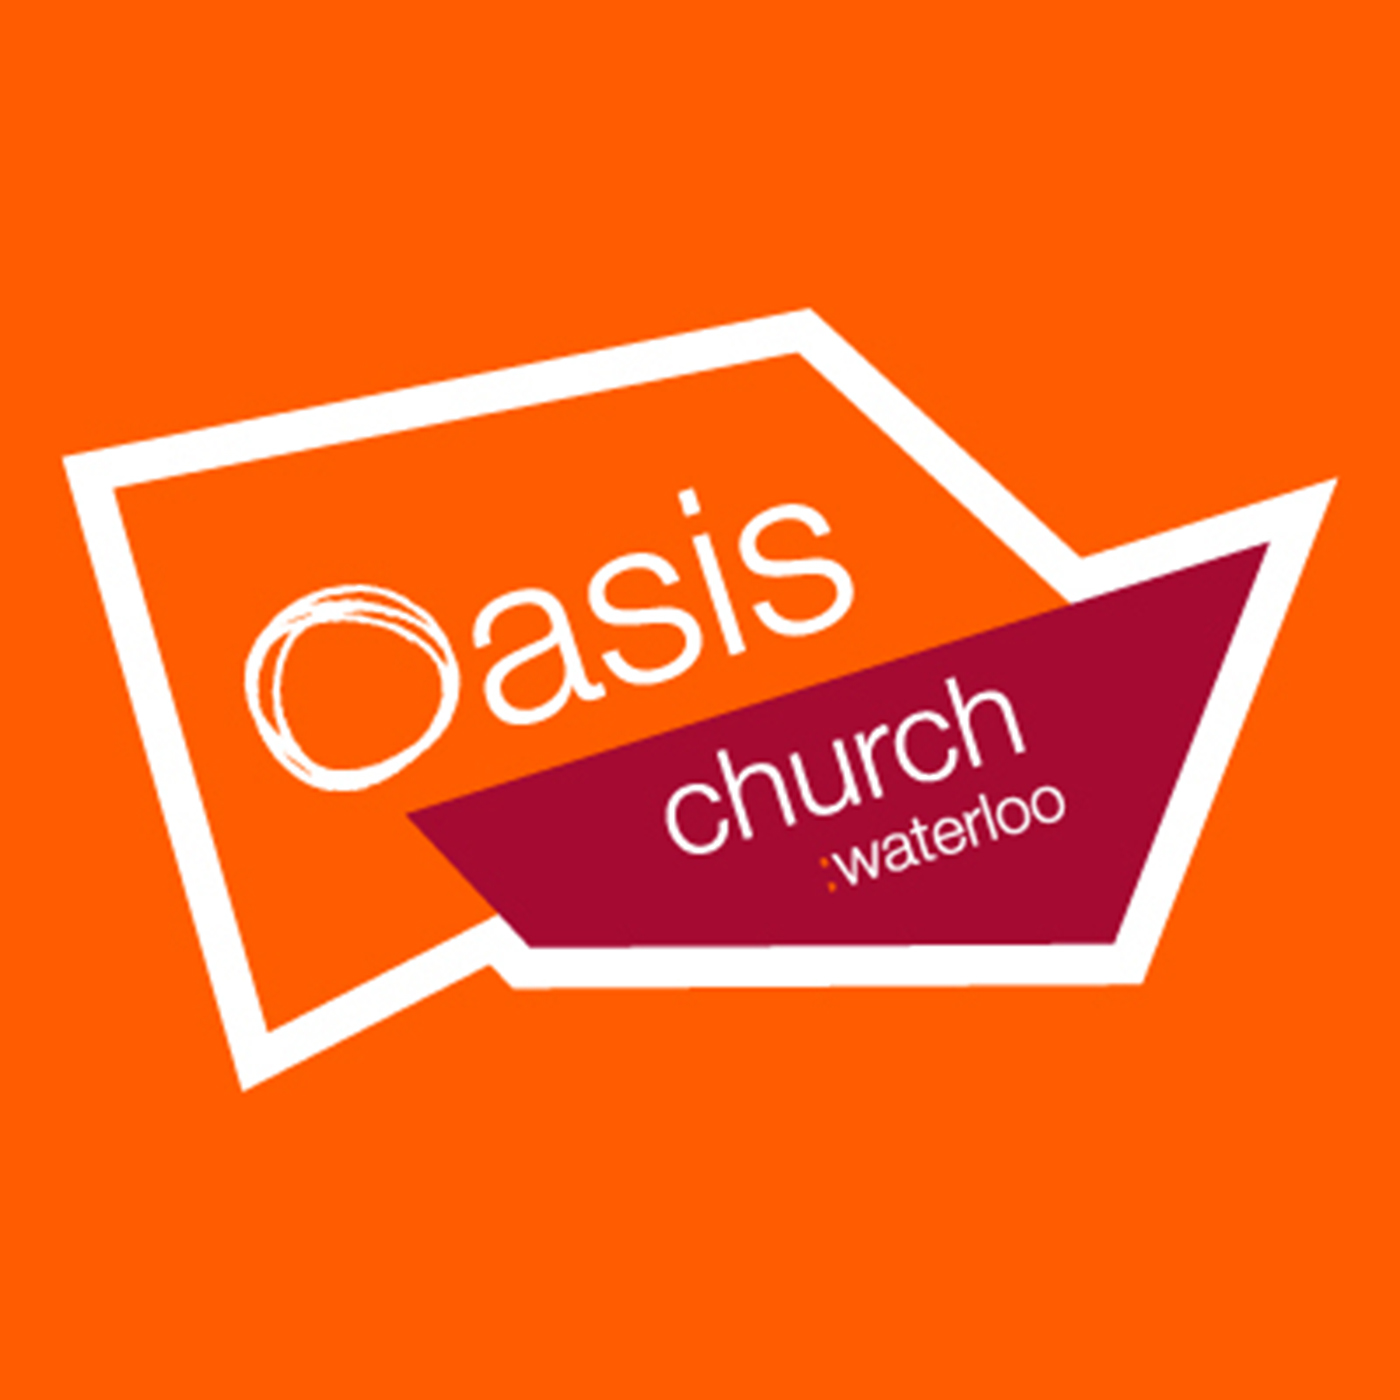 Oasis Church Waterloo podcast